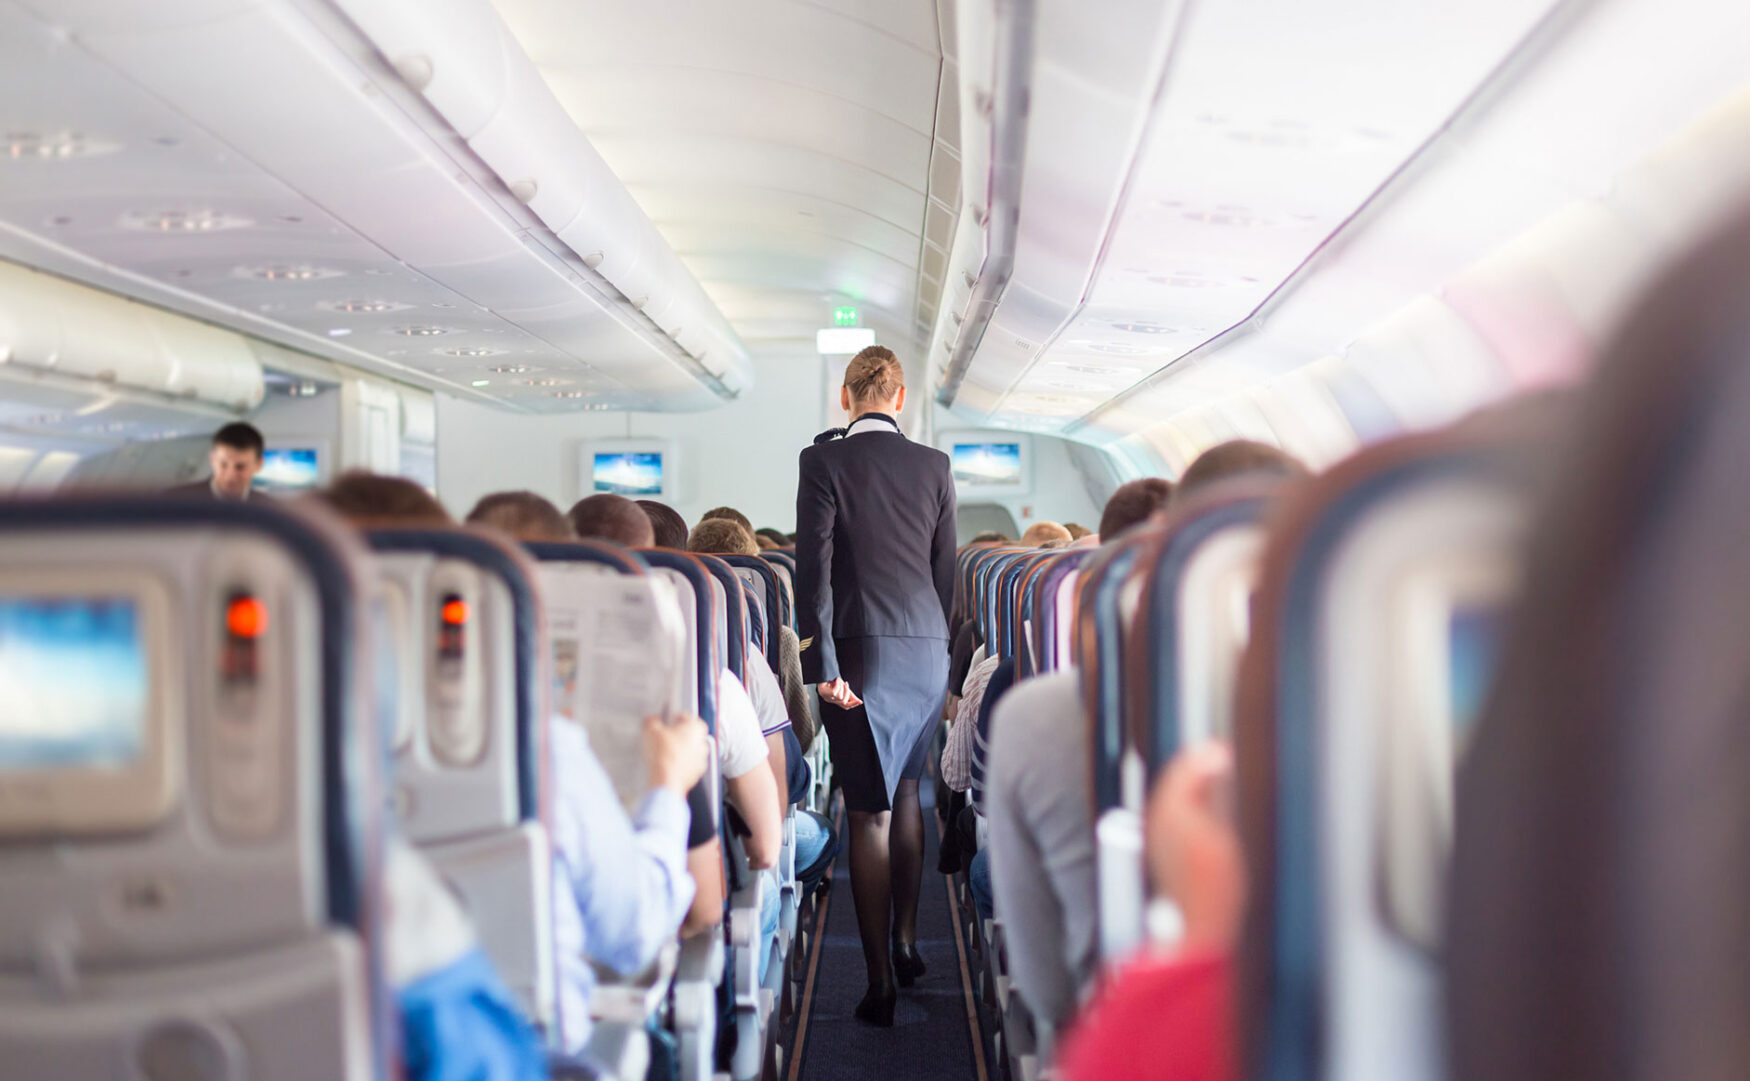 2-aisle airplane with flight attendant